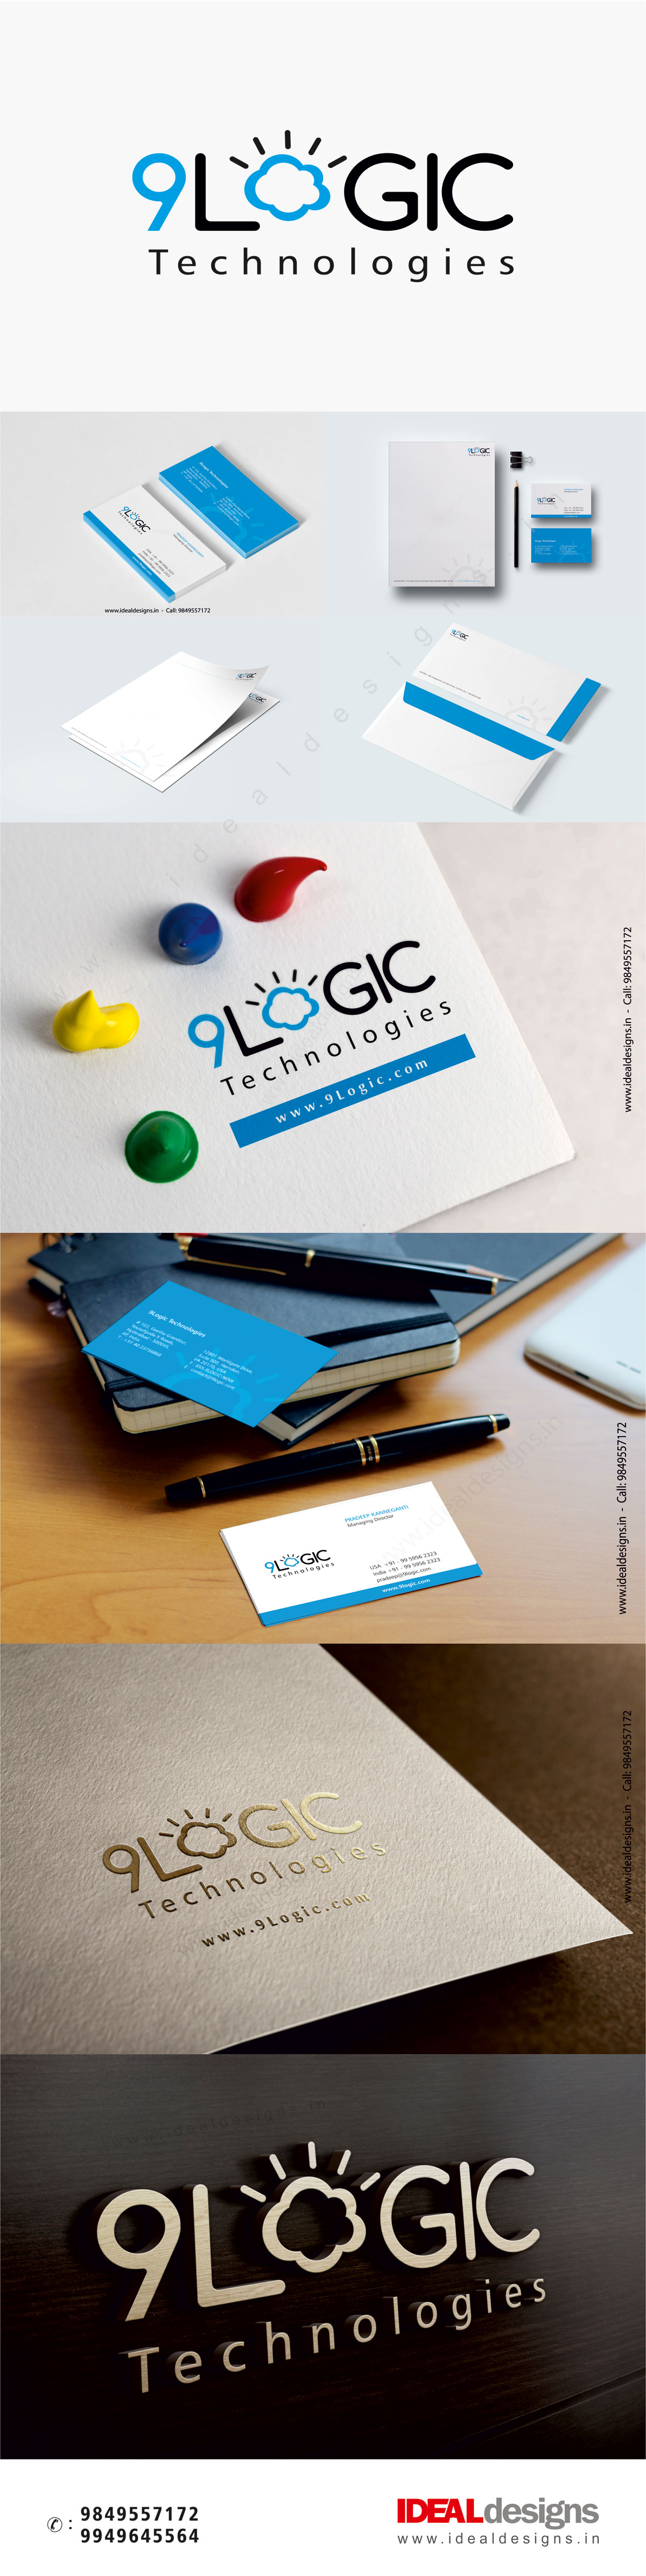 9Logic-Inc-Cloud-Services-Microsoft-Services-Brand-identity-design-india.jpg